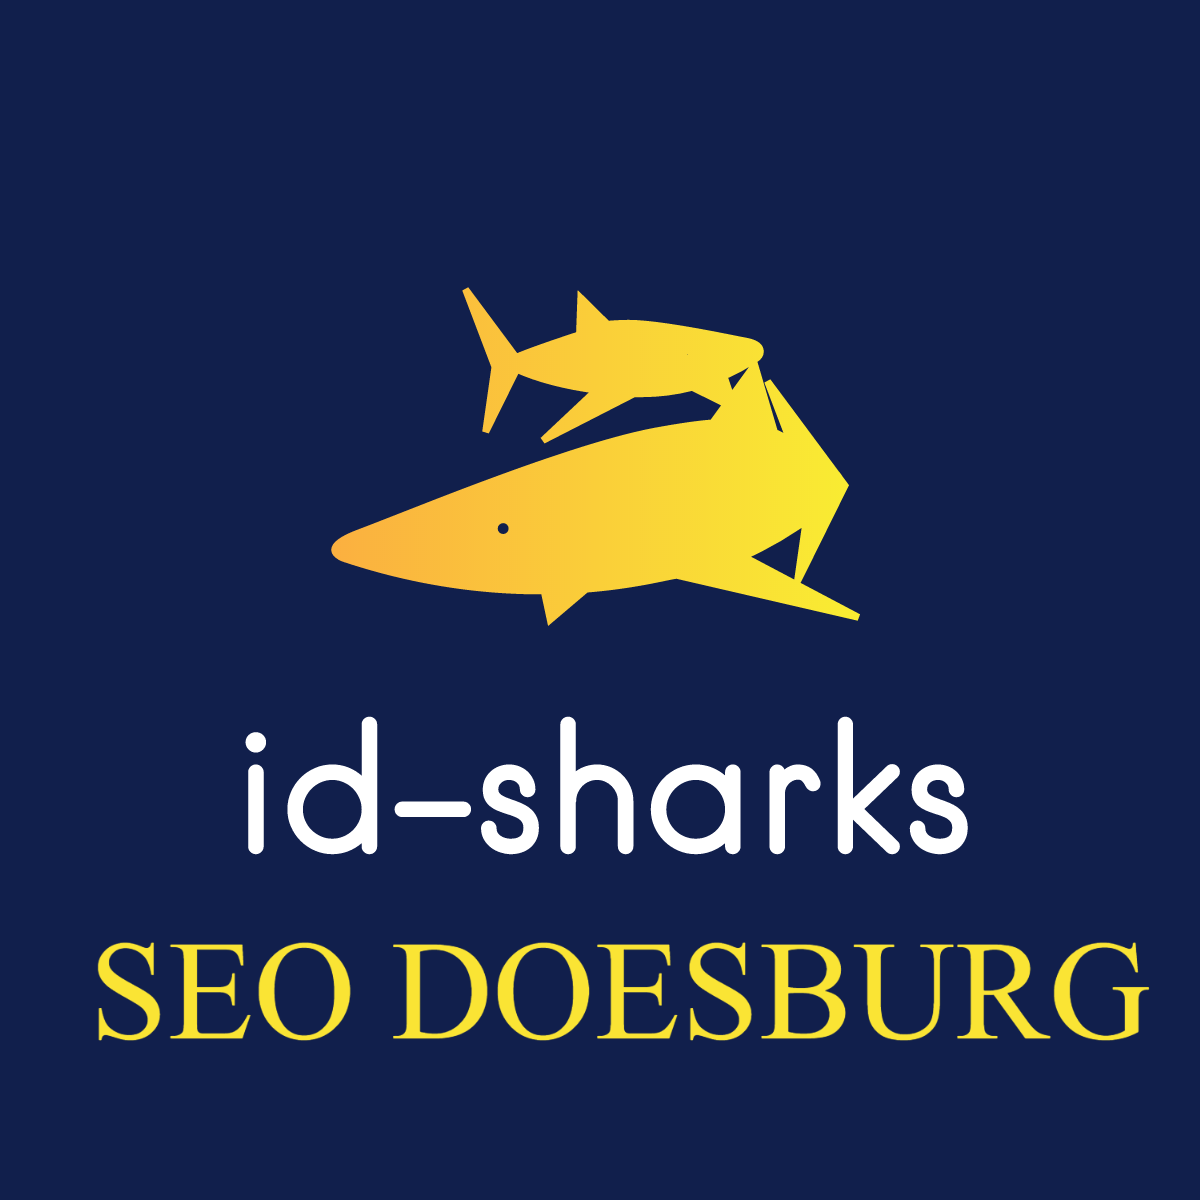 SEO Doesburg